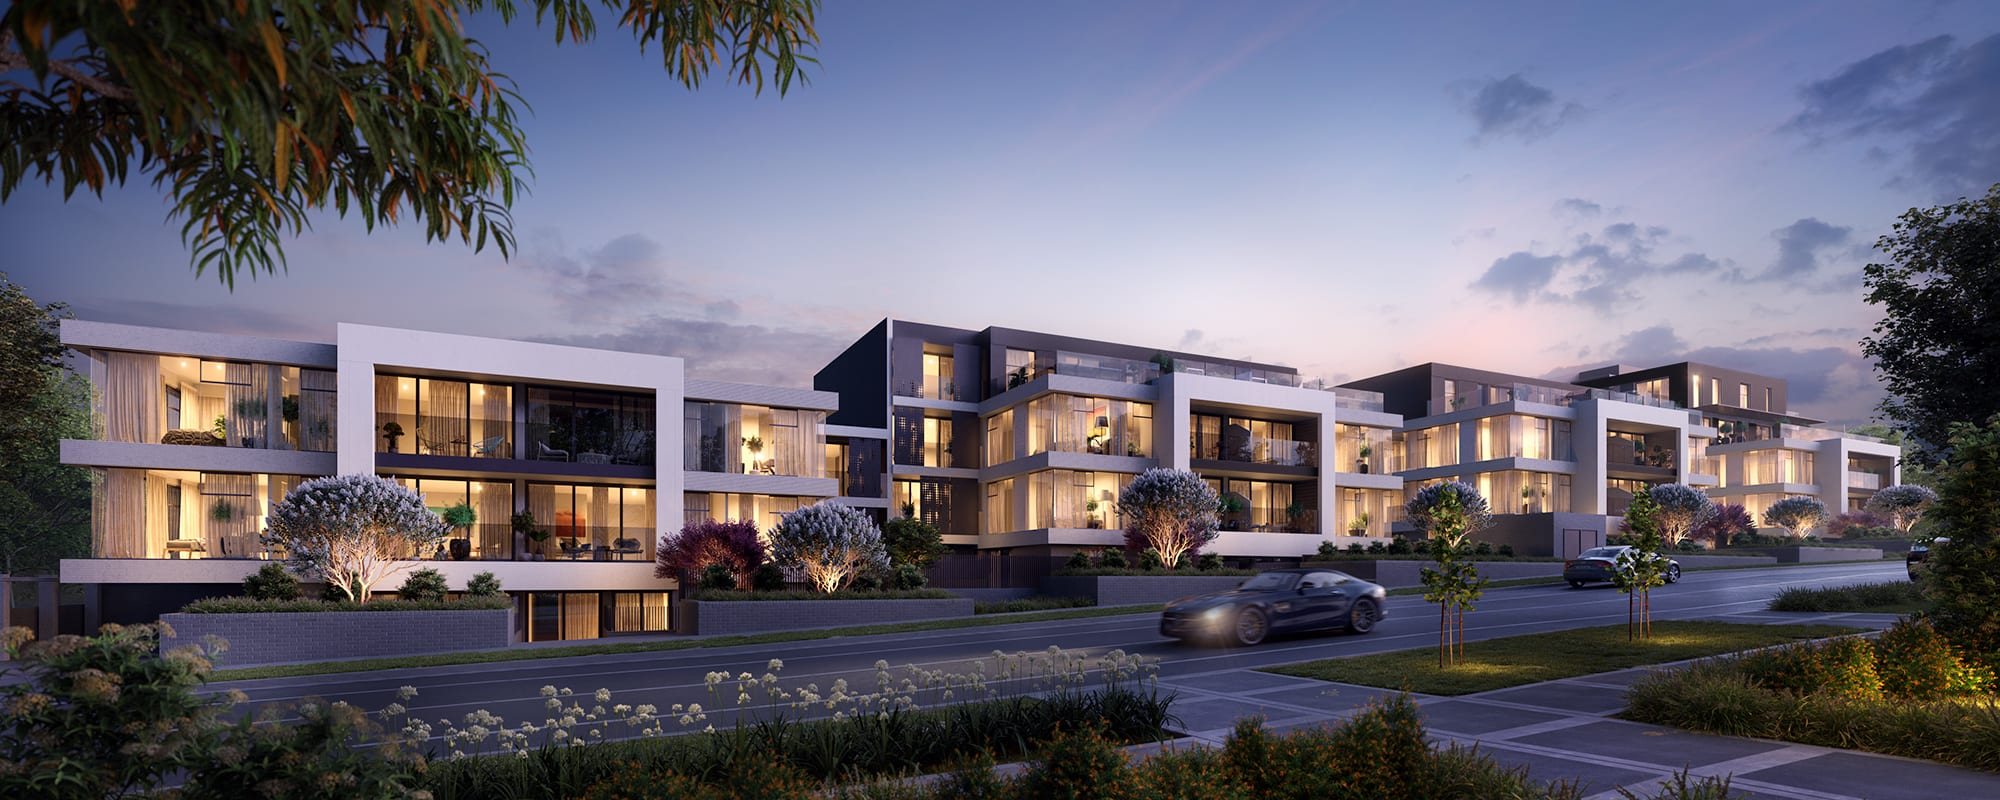 As Melbourne speaks of style and Chadstone speaks of luxury, one address unites them both – Collins & Bates